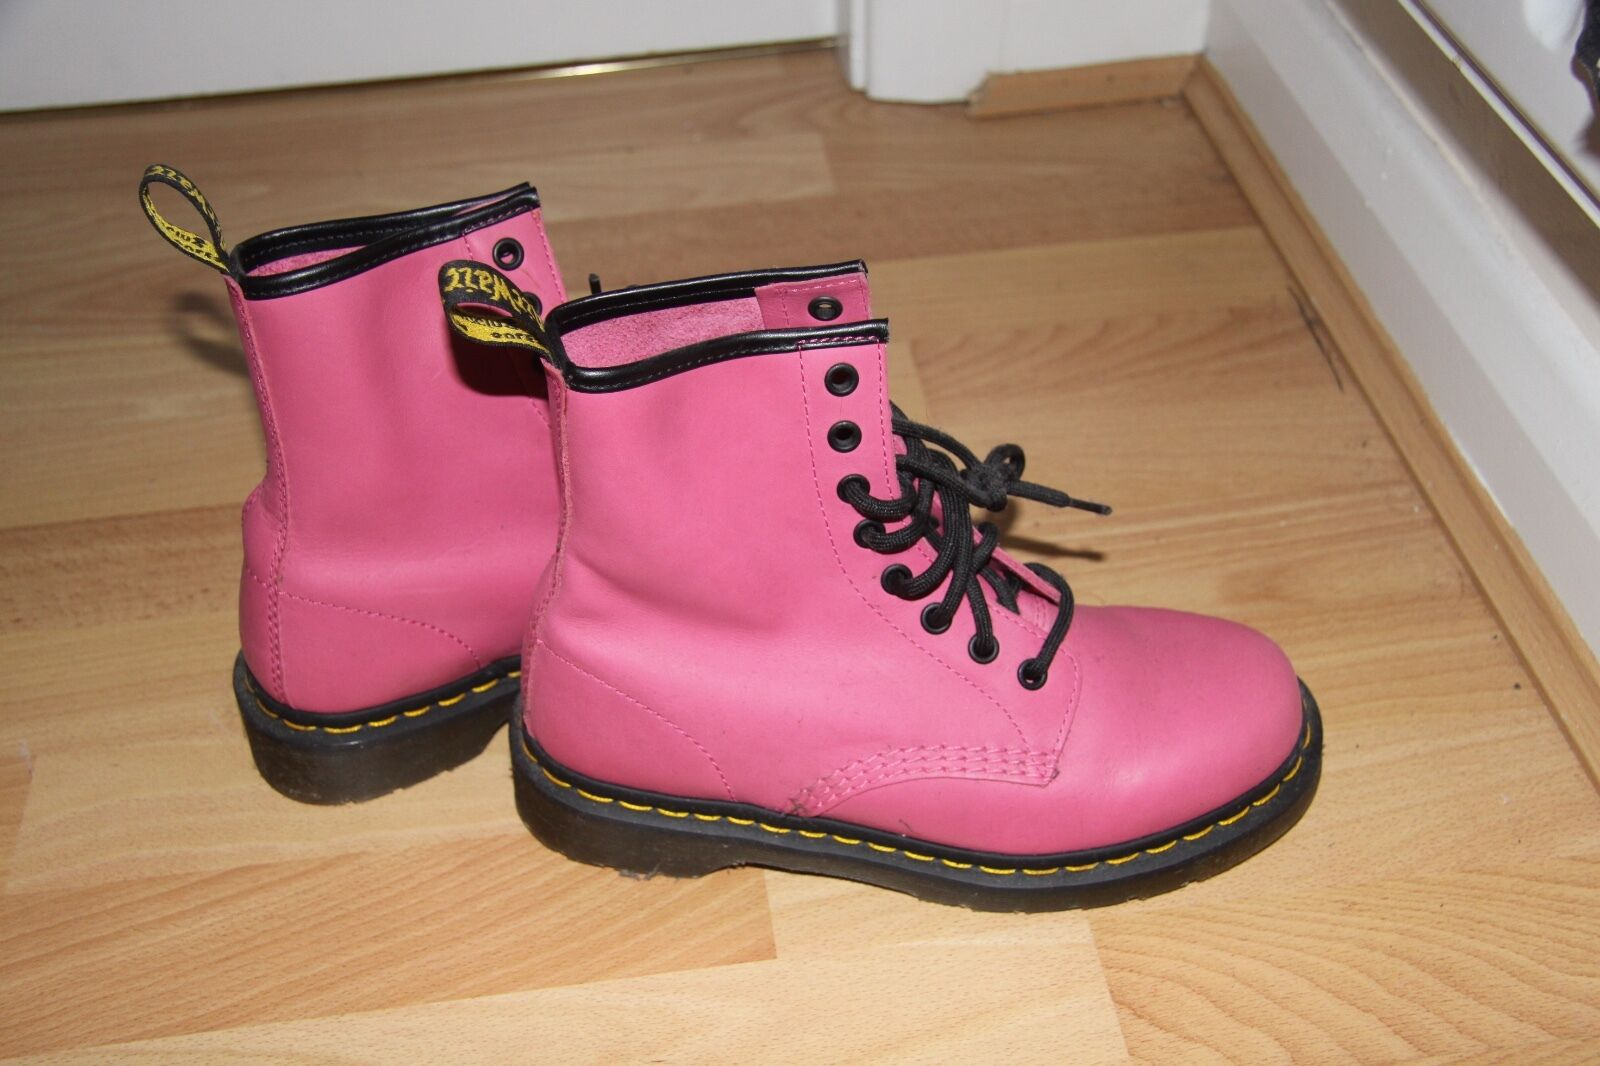 Grandes zapatos con descuento NEW Never Worn Dr Martens Candy Pink 8 eyelet Size 5